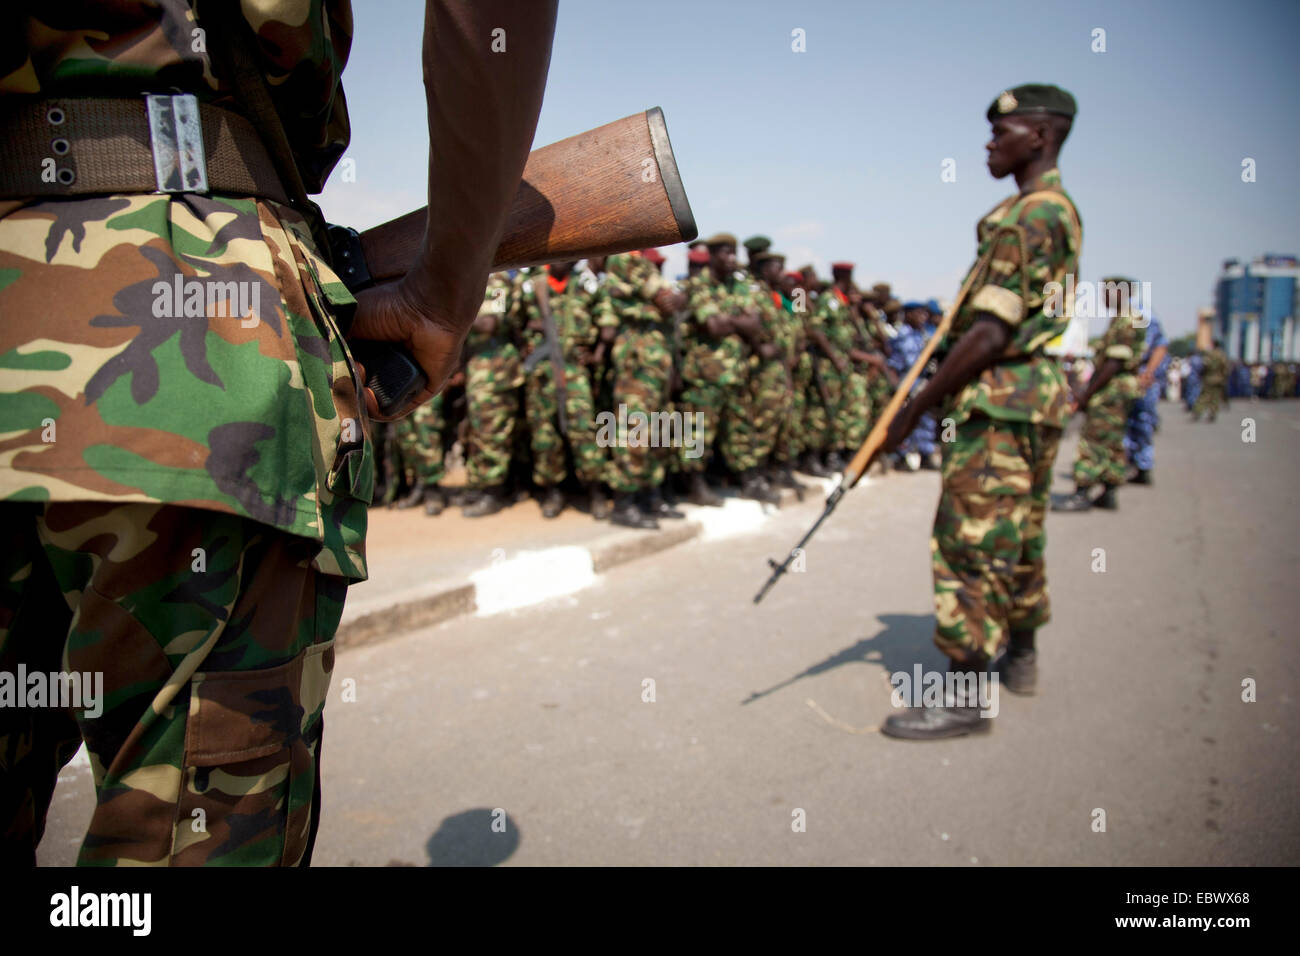 armed soldiers during an event at the Independence Day (Juli 1), Burundi, Bujumbura Marie, Bujumbura - Stock Image